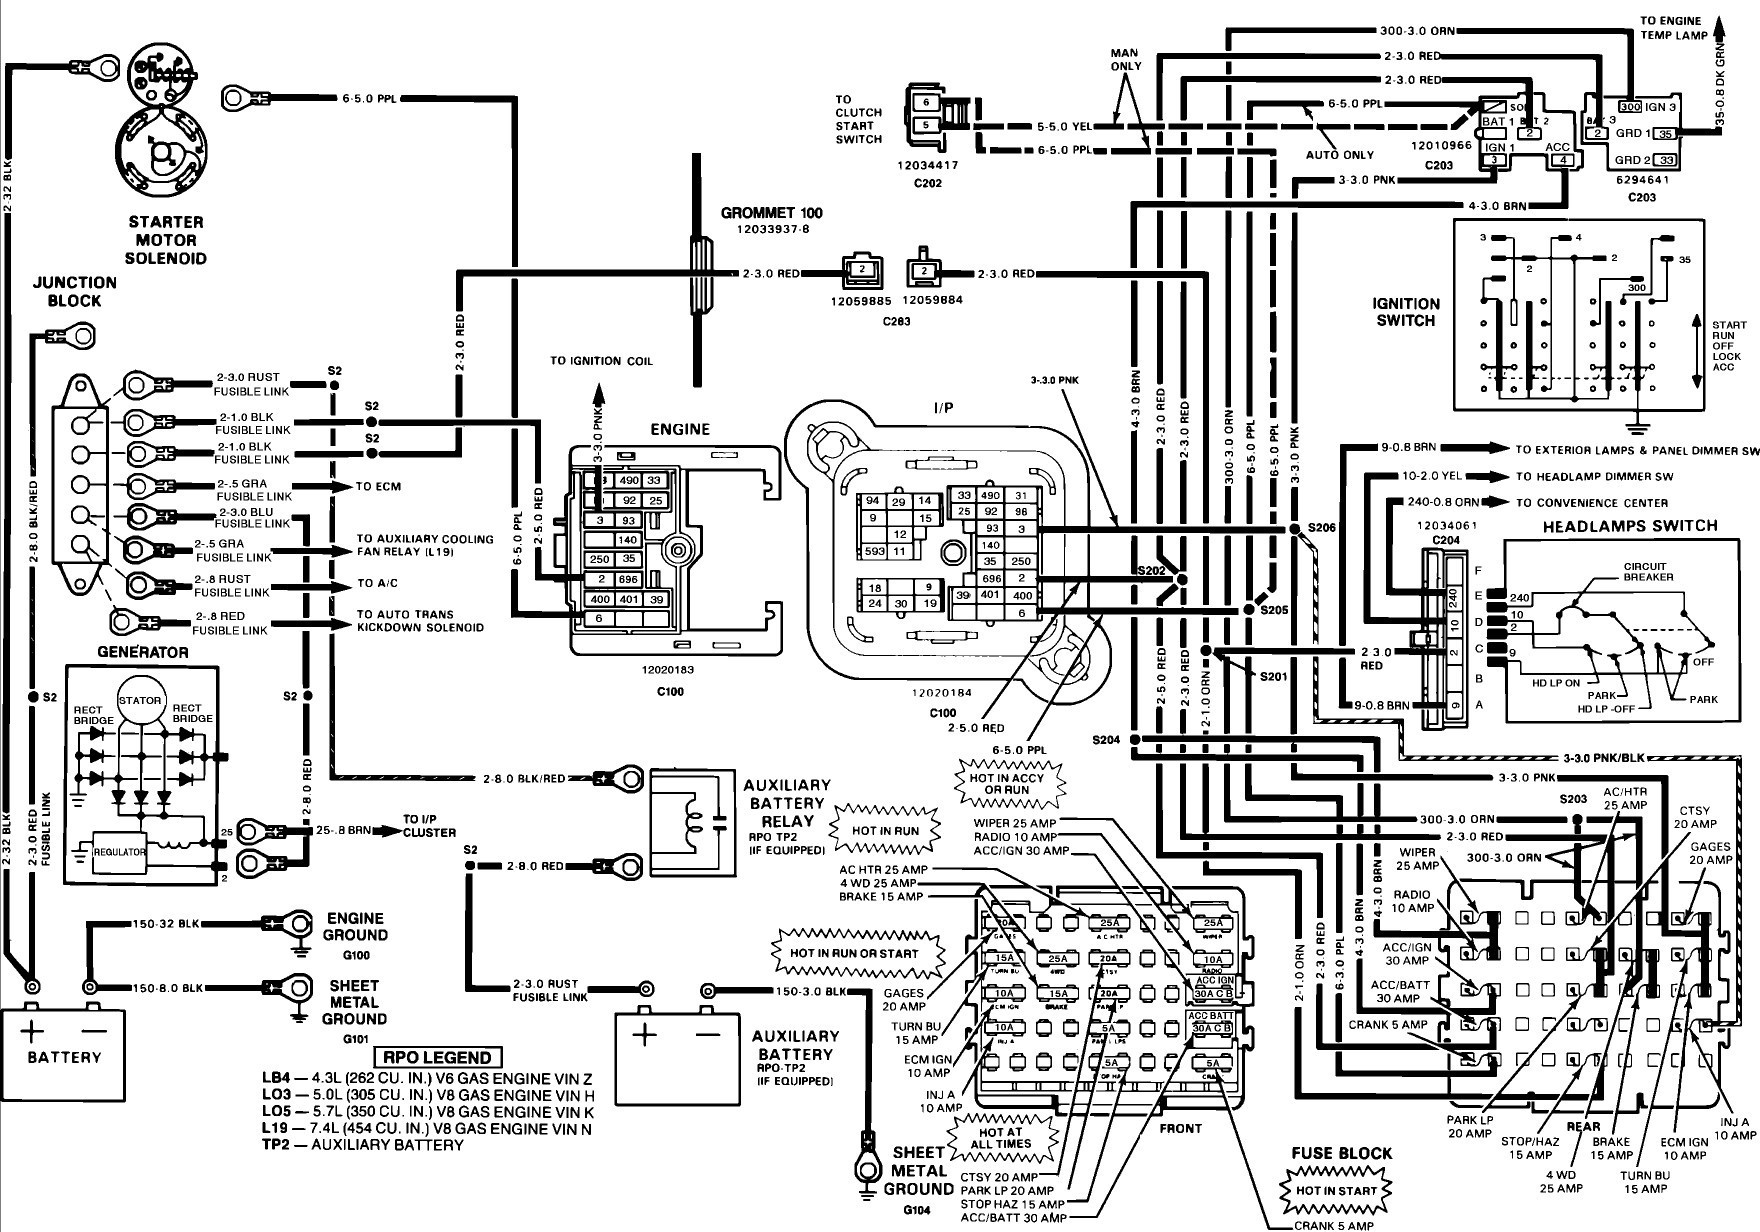 Engine Wiring Diagram Wiring Diagram Relay New Engine Schematic Diagram Electrical Of Engine Wiring Diagram